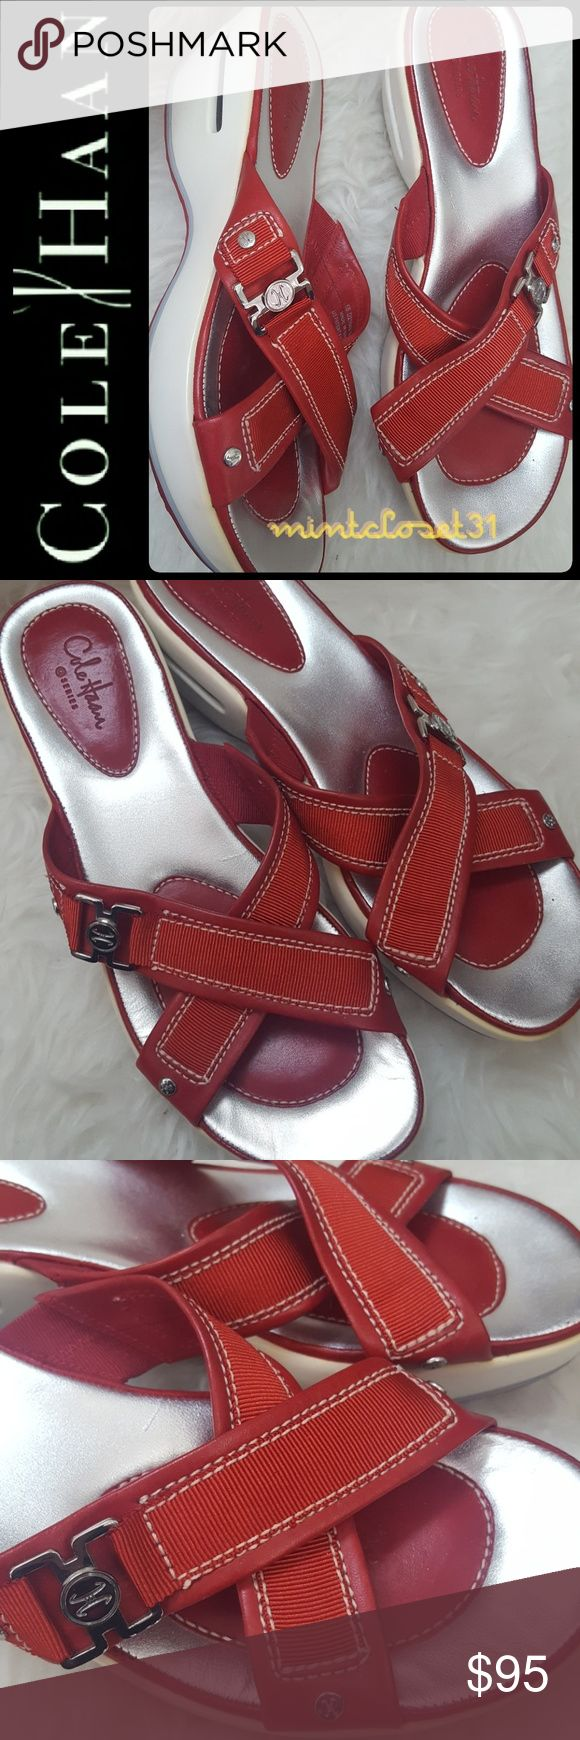 Cole Haan Leather Sandal Wedge Cole Haan Signature Shoes in Gorgeous Leather Upper Sandal Wedge about 2 Inches! Beautiful in Red and Silver! Iconic Cole Haan with US Patent Nike Air technology for Maximum Comfort!!   Cross Strap Details on Vamp! Tonal and Contrast Stitching with Slightly Padded footbed! Rubber Outsole for Comfort and Grip! Top Notch Quality to Last a Lifetime! Barely Used in  Mint Condition! Size US 8 1/2 B Cole Haan Shoes Sandals